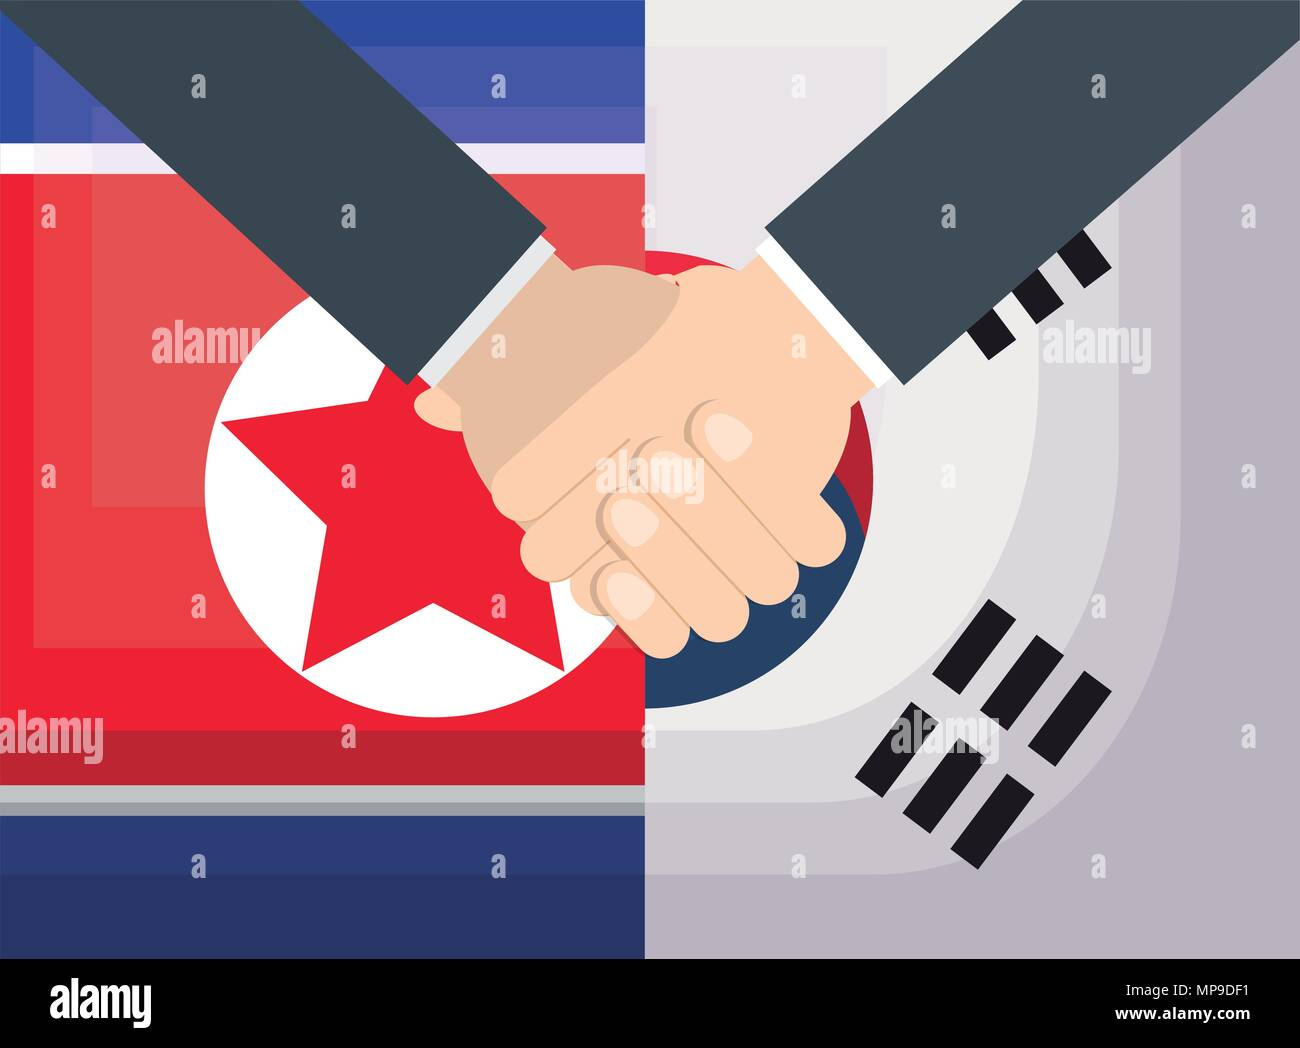 north korea and south korea flags and handshake symbolizes a peace talks, vector illustration Stock Vector